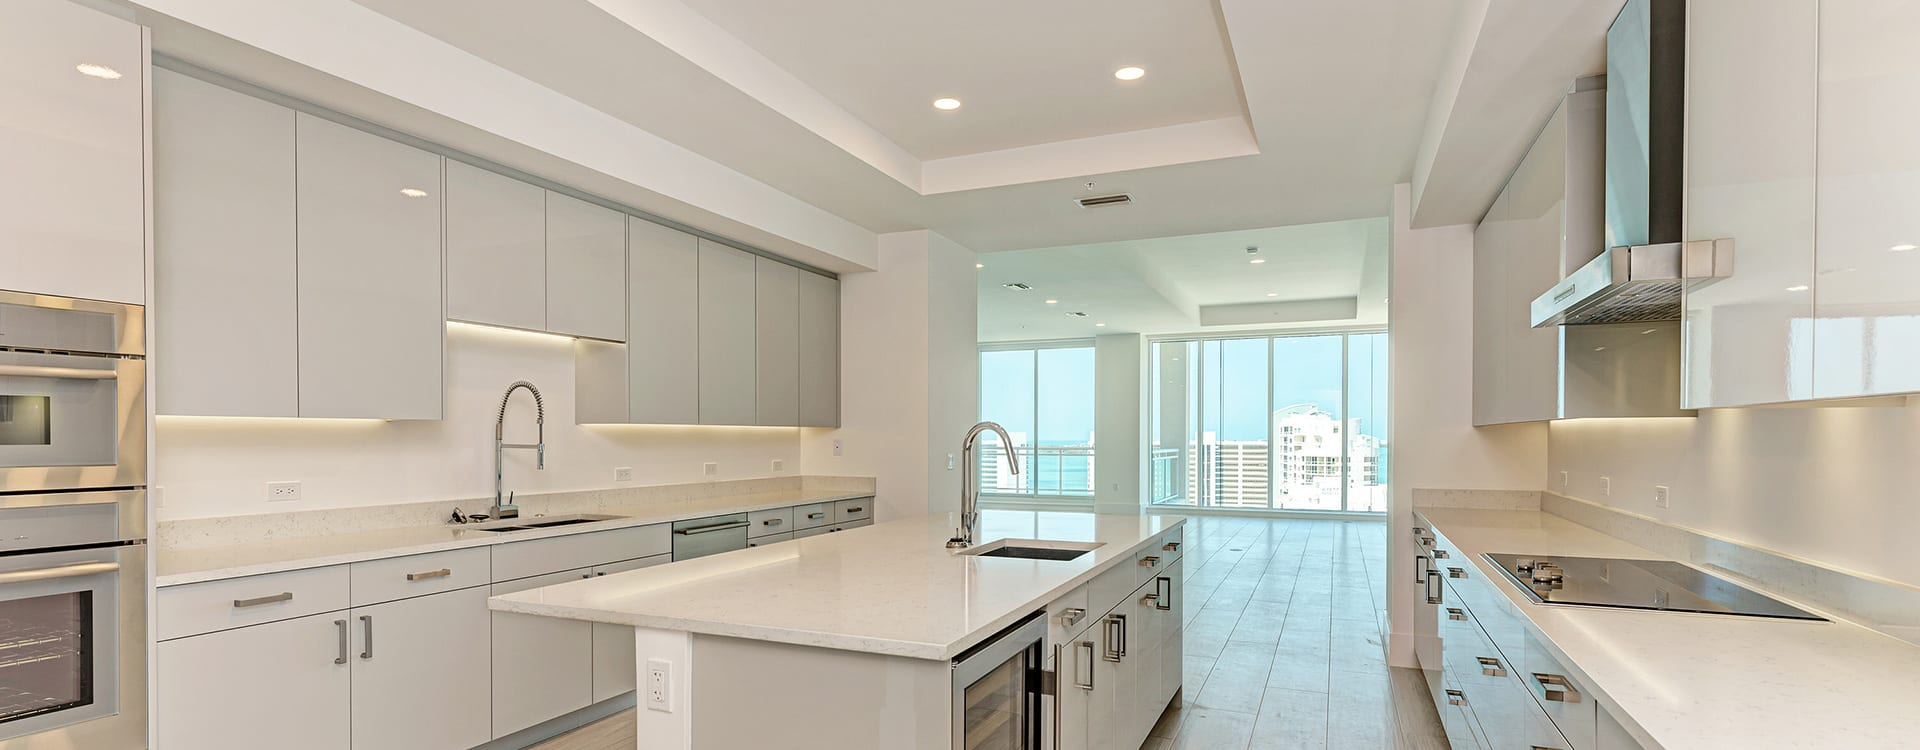 BLVD Sarasota Residence 1603 kitchen and island with view